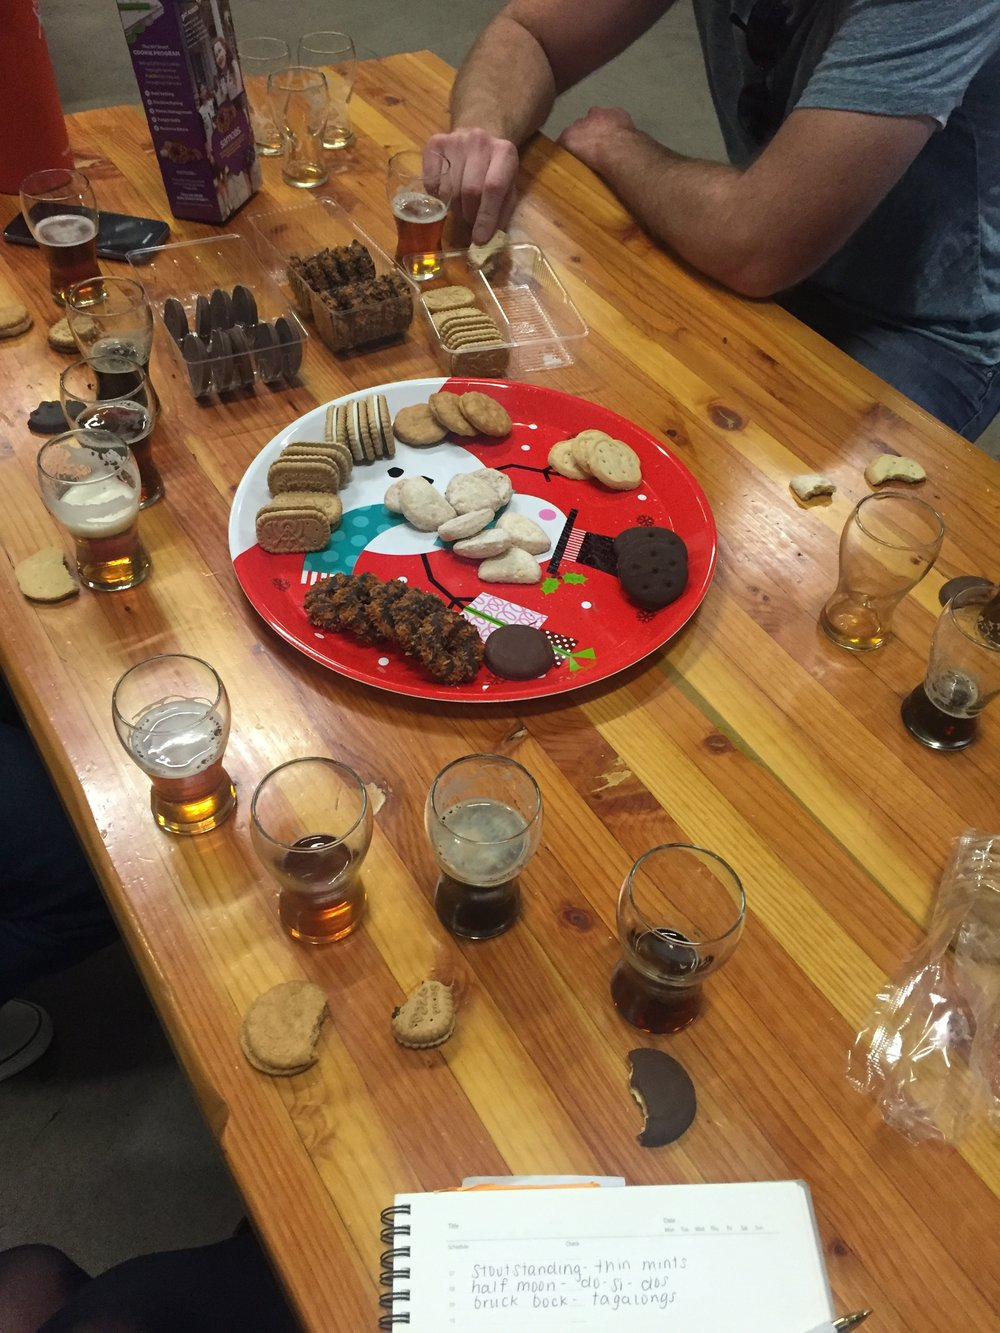 Serious business meetings involve beer AND cookies.